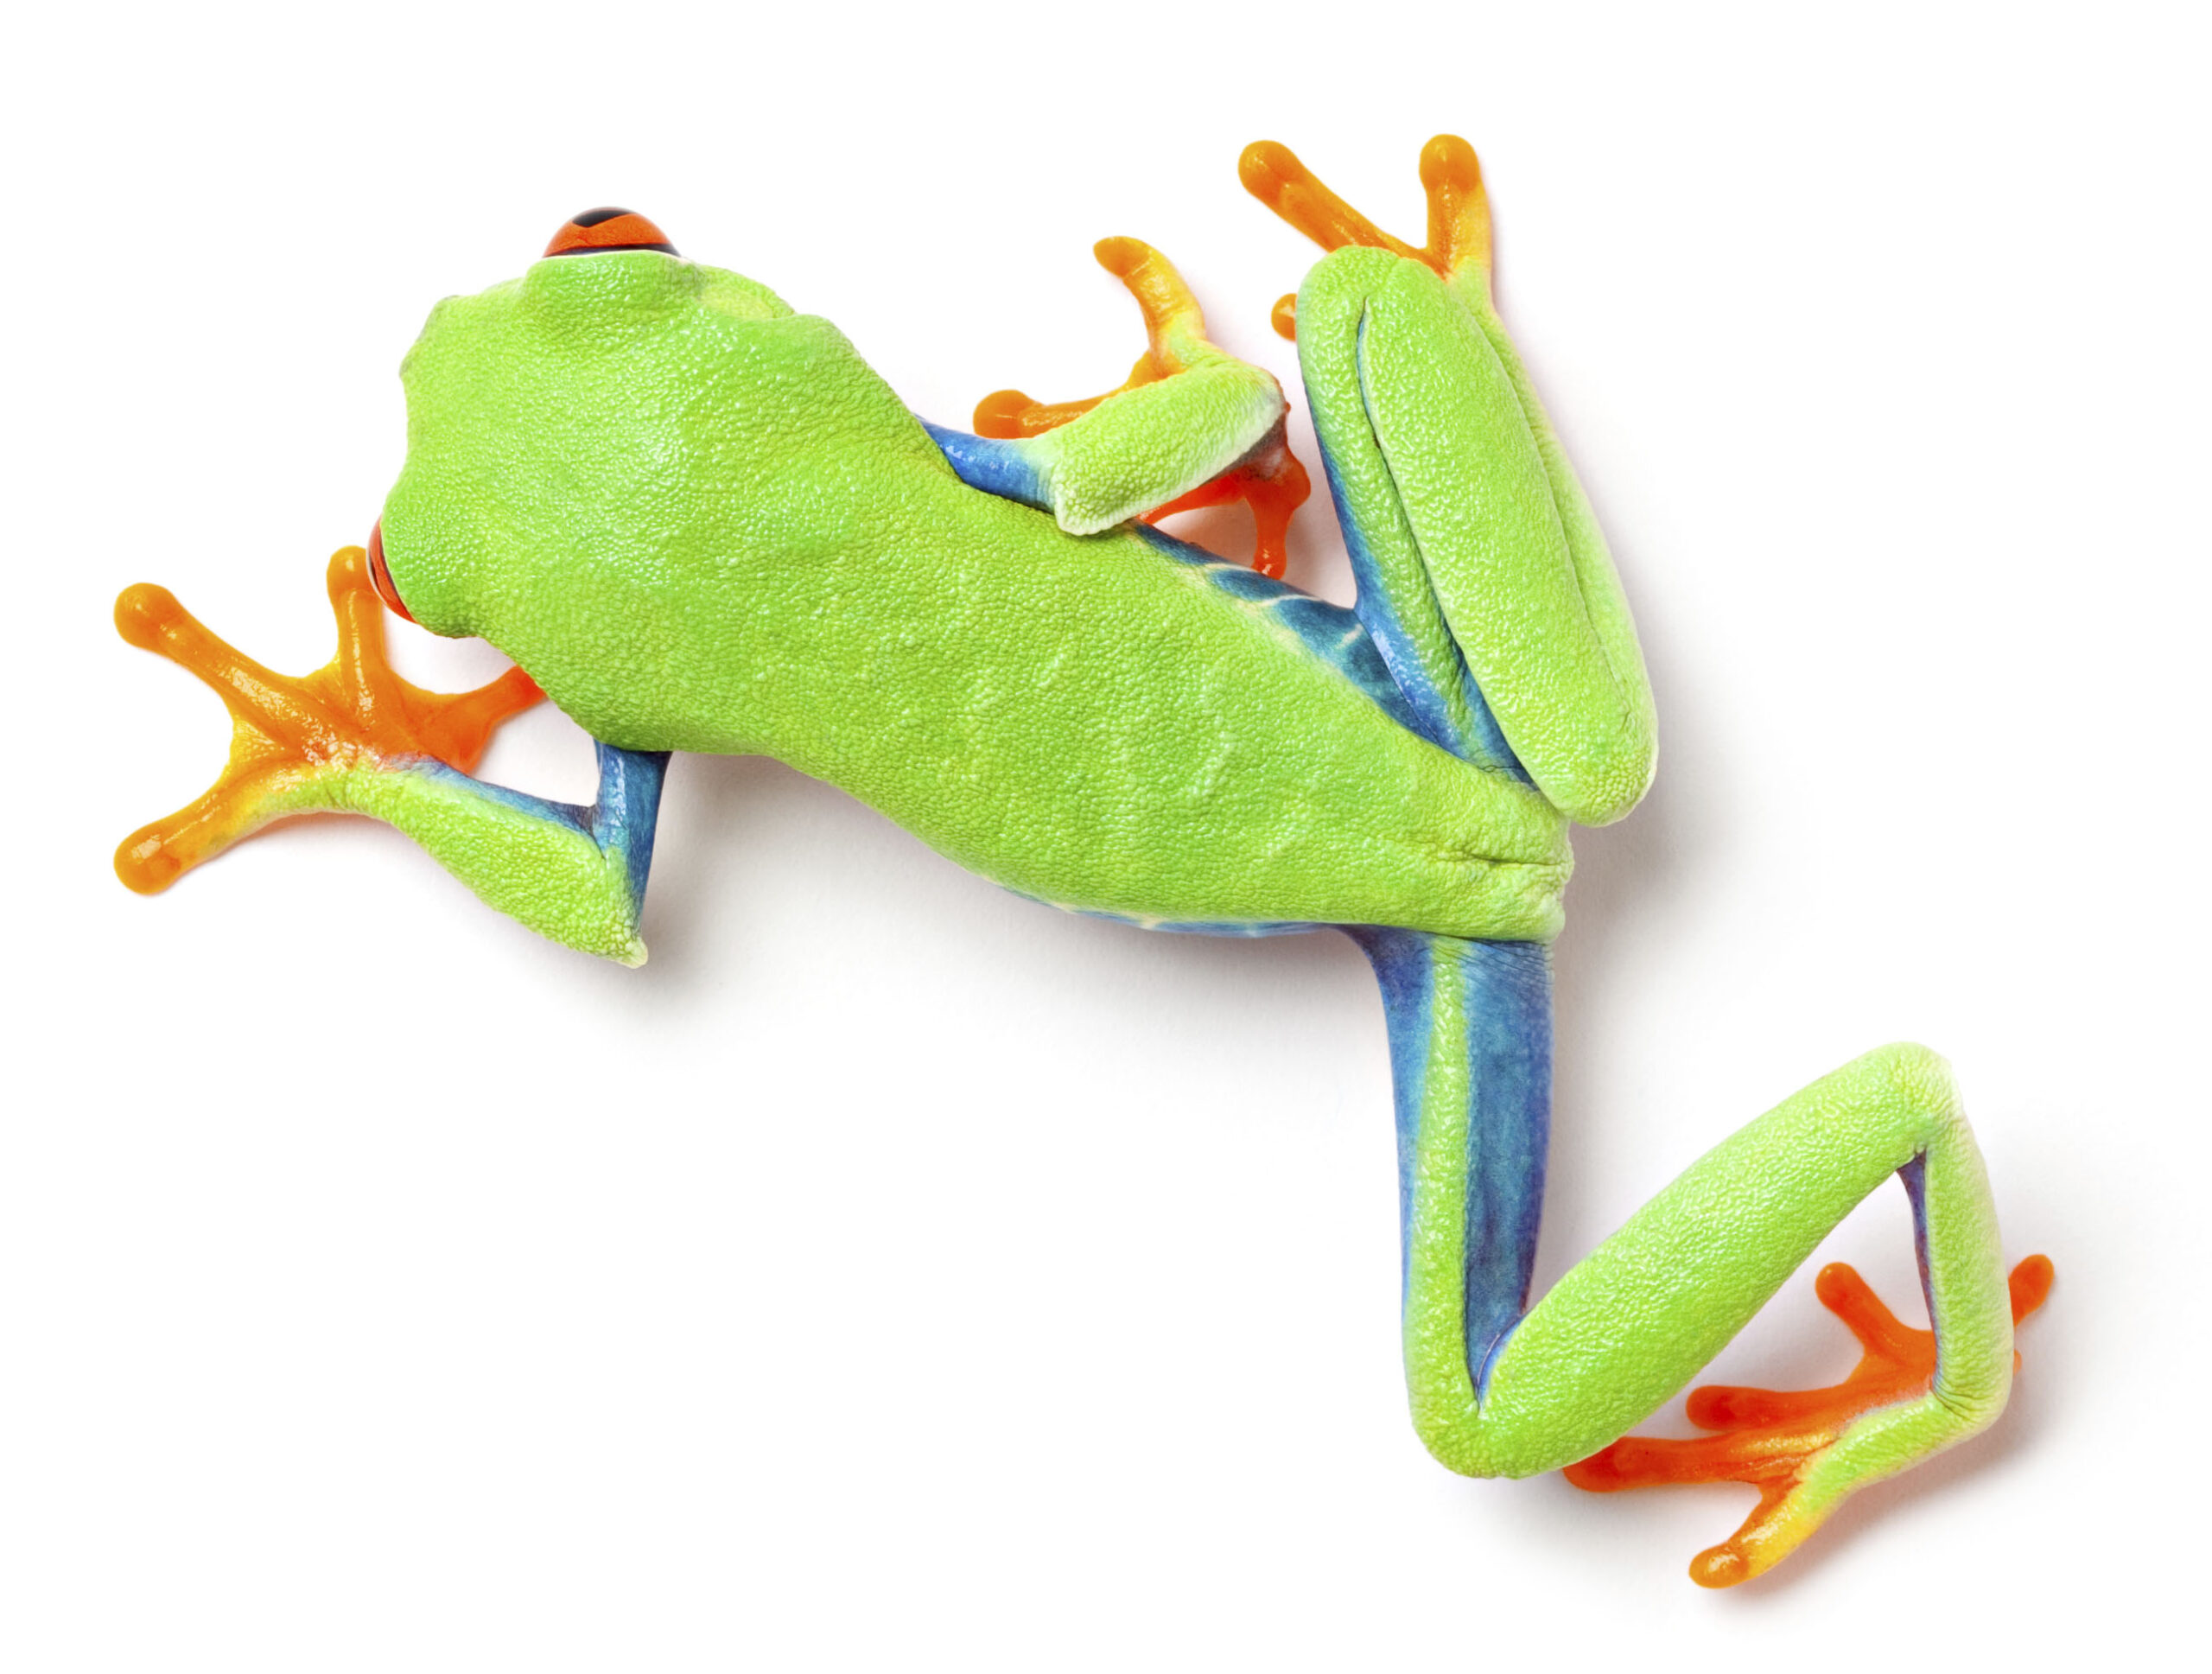 Red Eyed Tree Frog Top View